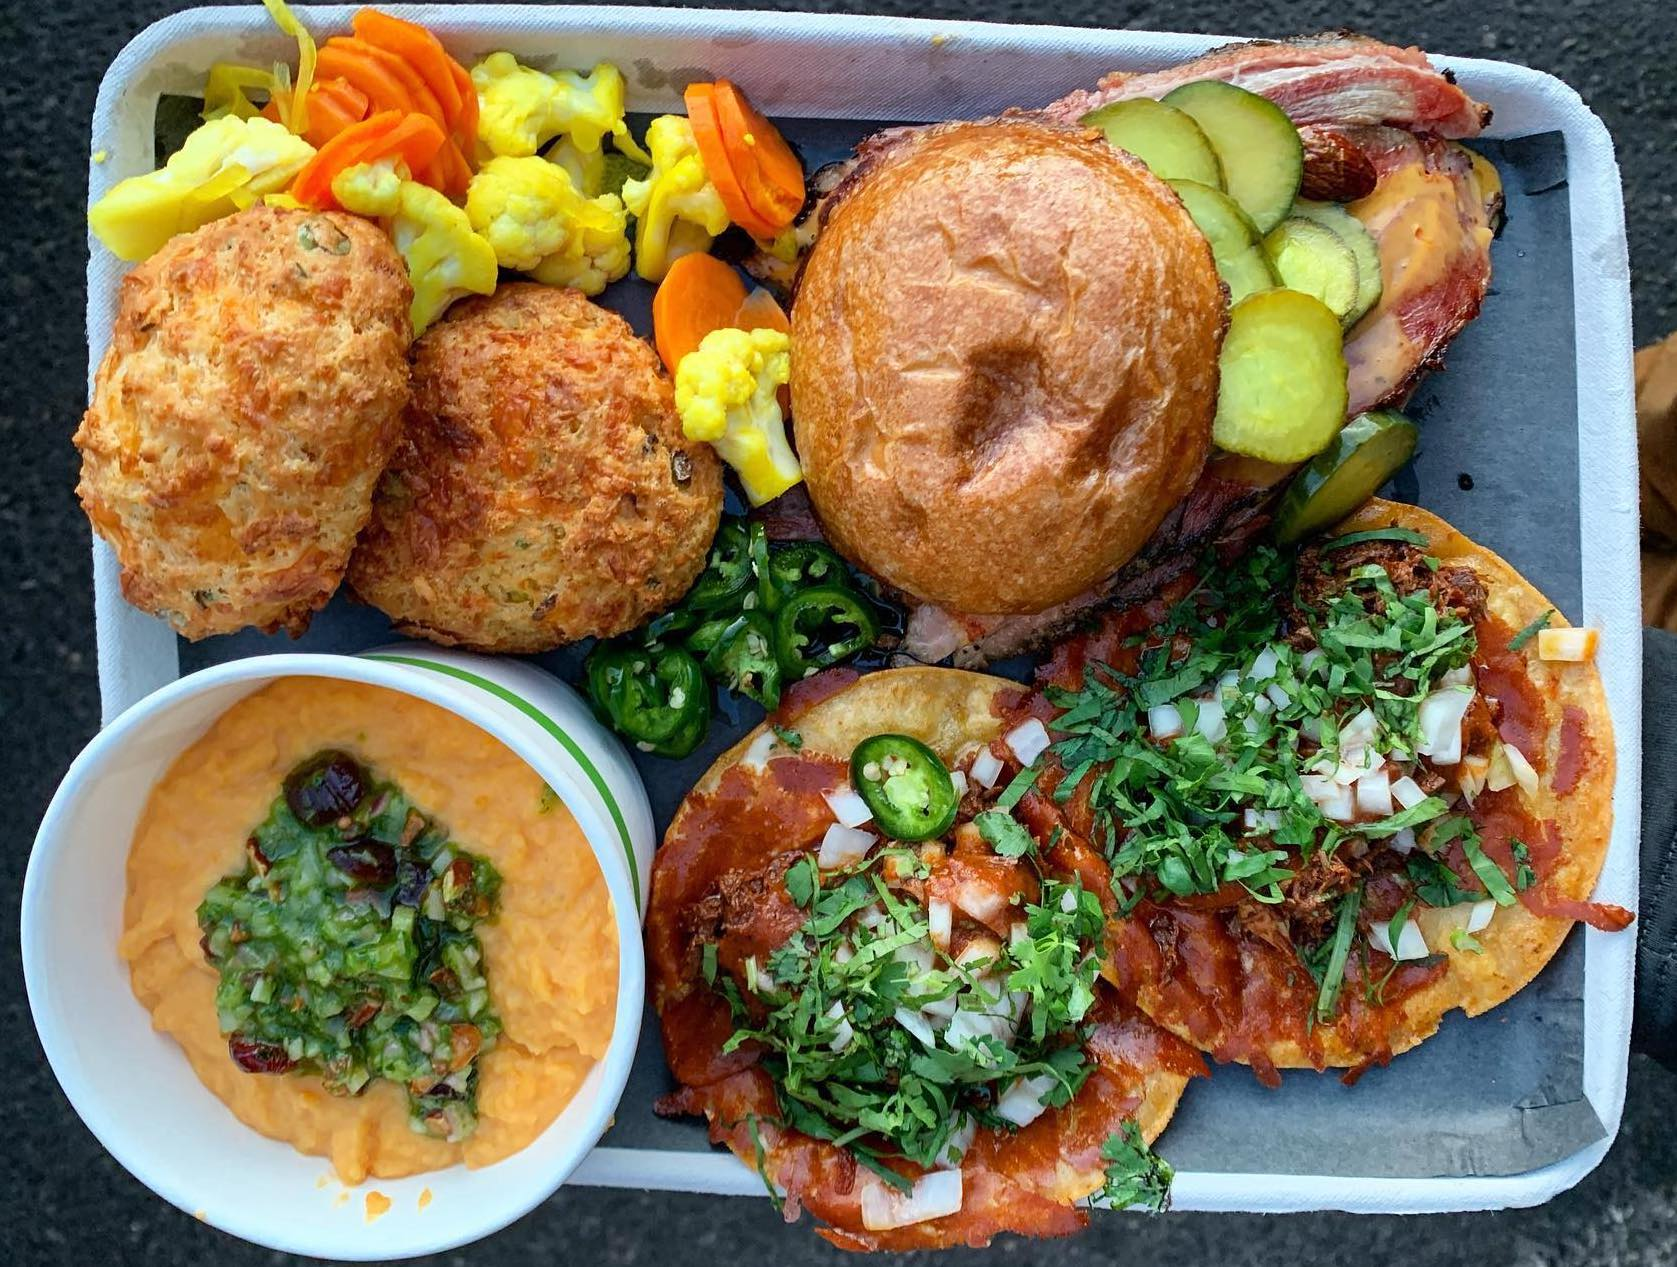 A half sheet pan serving tray from Animales Barbecue piled high with offerings. A cheesy bowl of soup, bun covered meat sandwich, two cheesy biscuits, birria tacos, and pickles